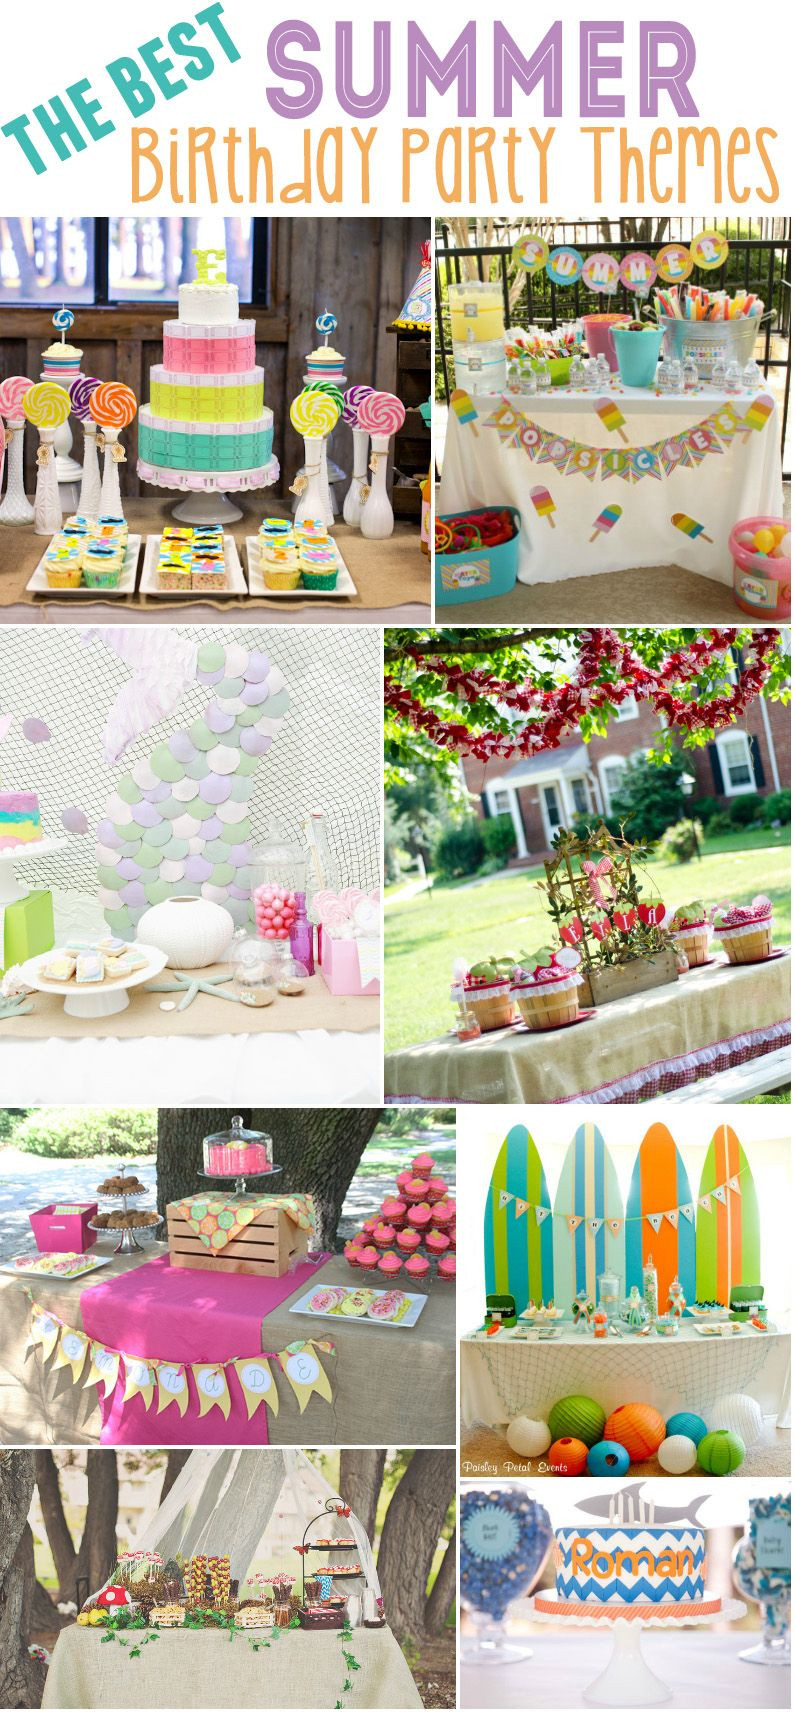 Cool Summer Party Ideas  15 Best Summer Birthday Party Themes Design Dazzle